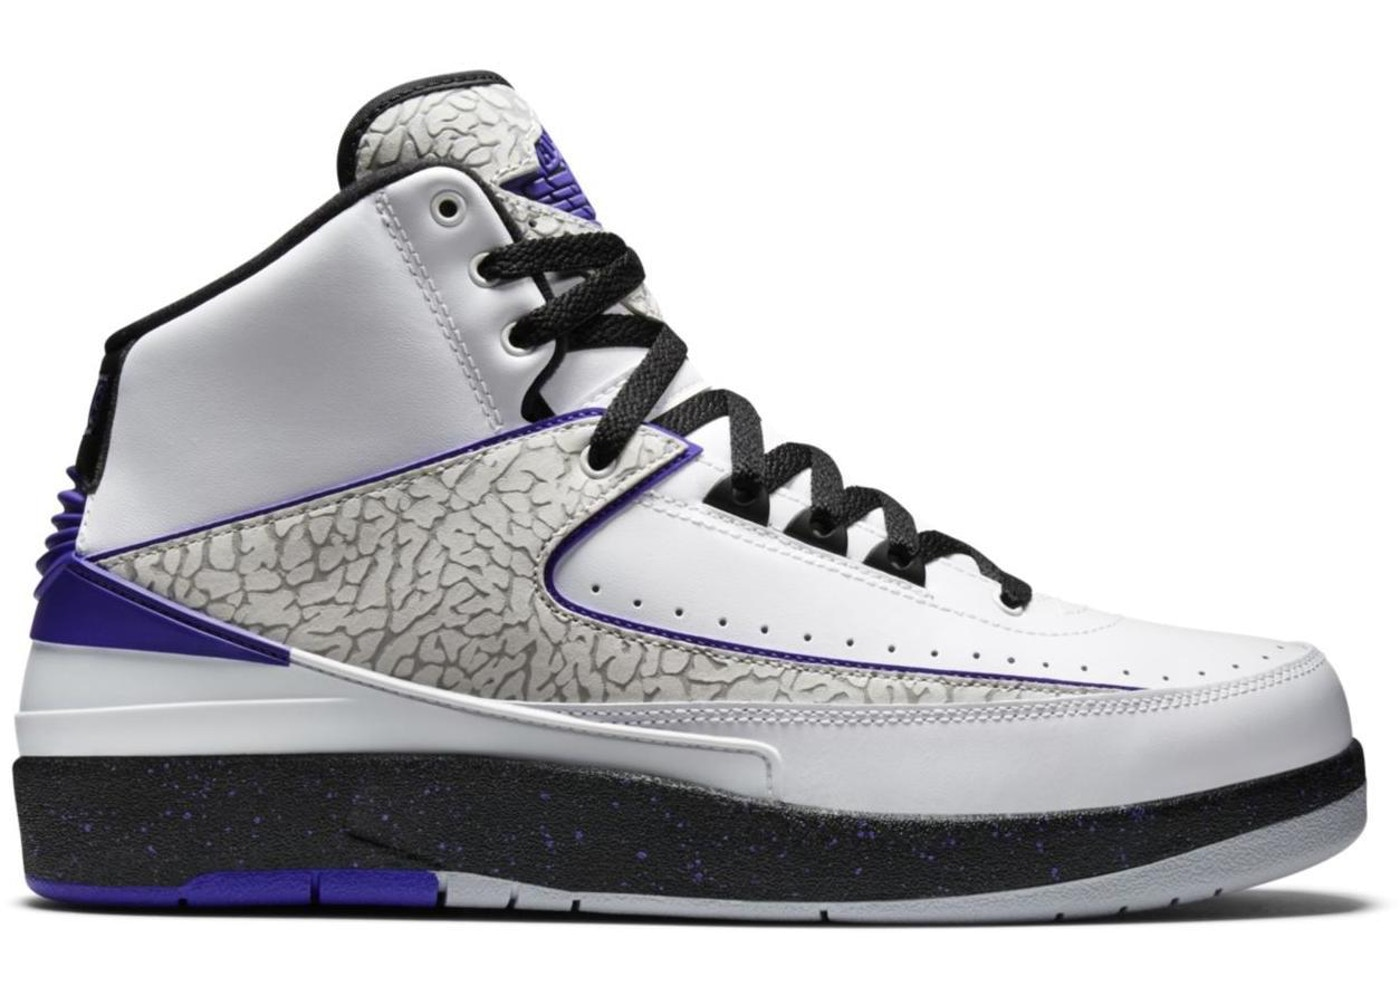 new products 654d6 e3873 Buy Air Jordan 2 Shoes & Deadstock Sneakers